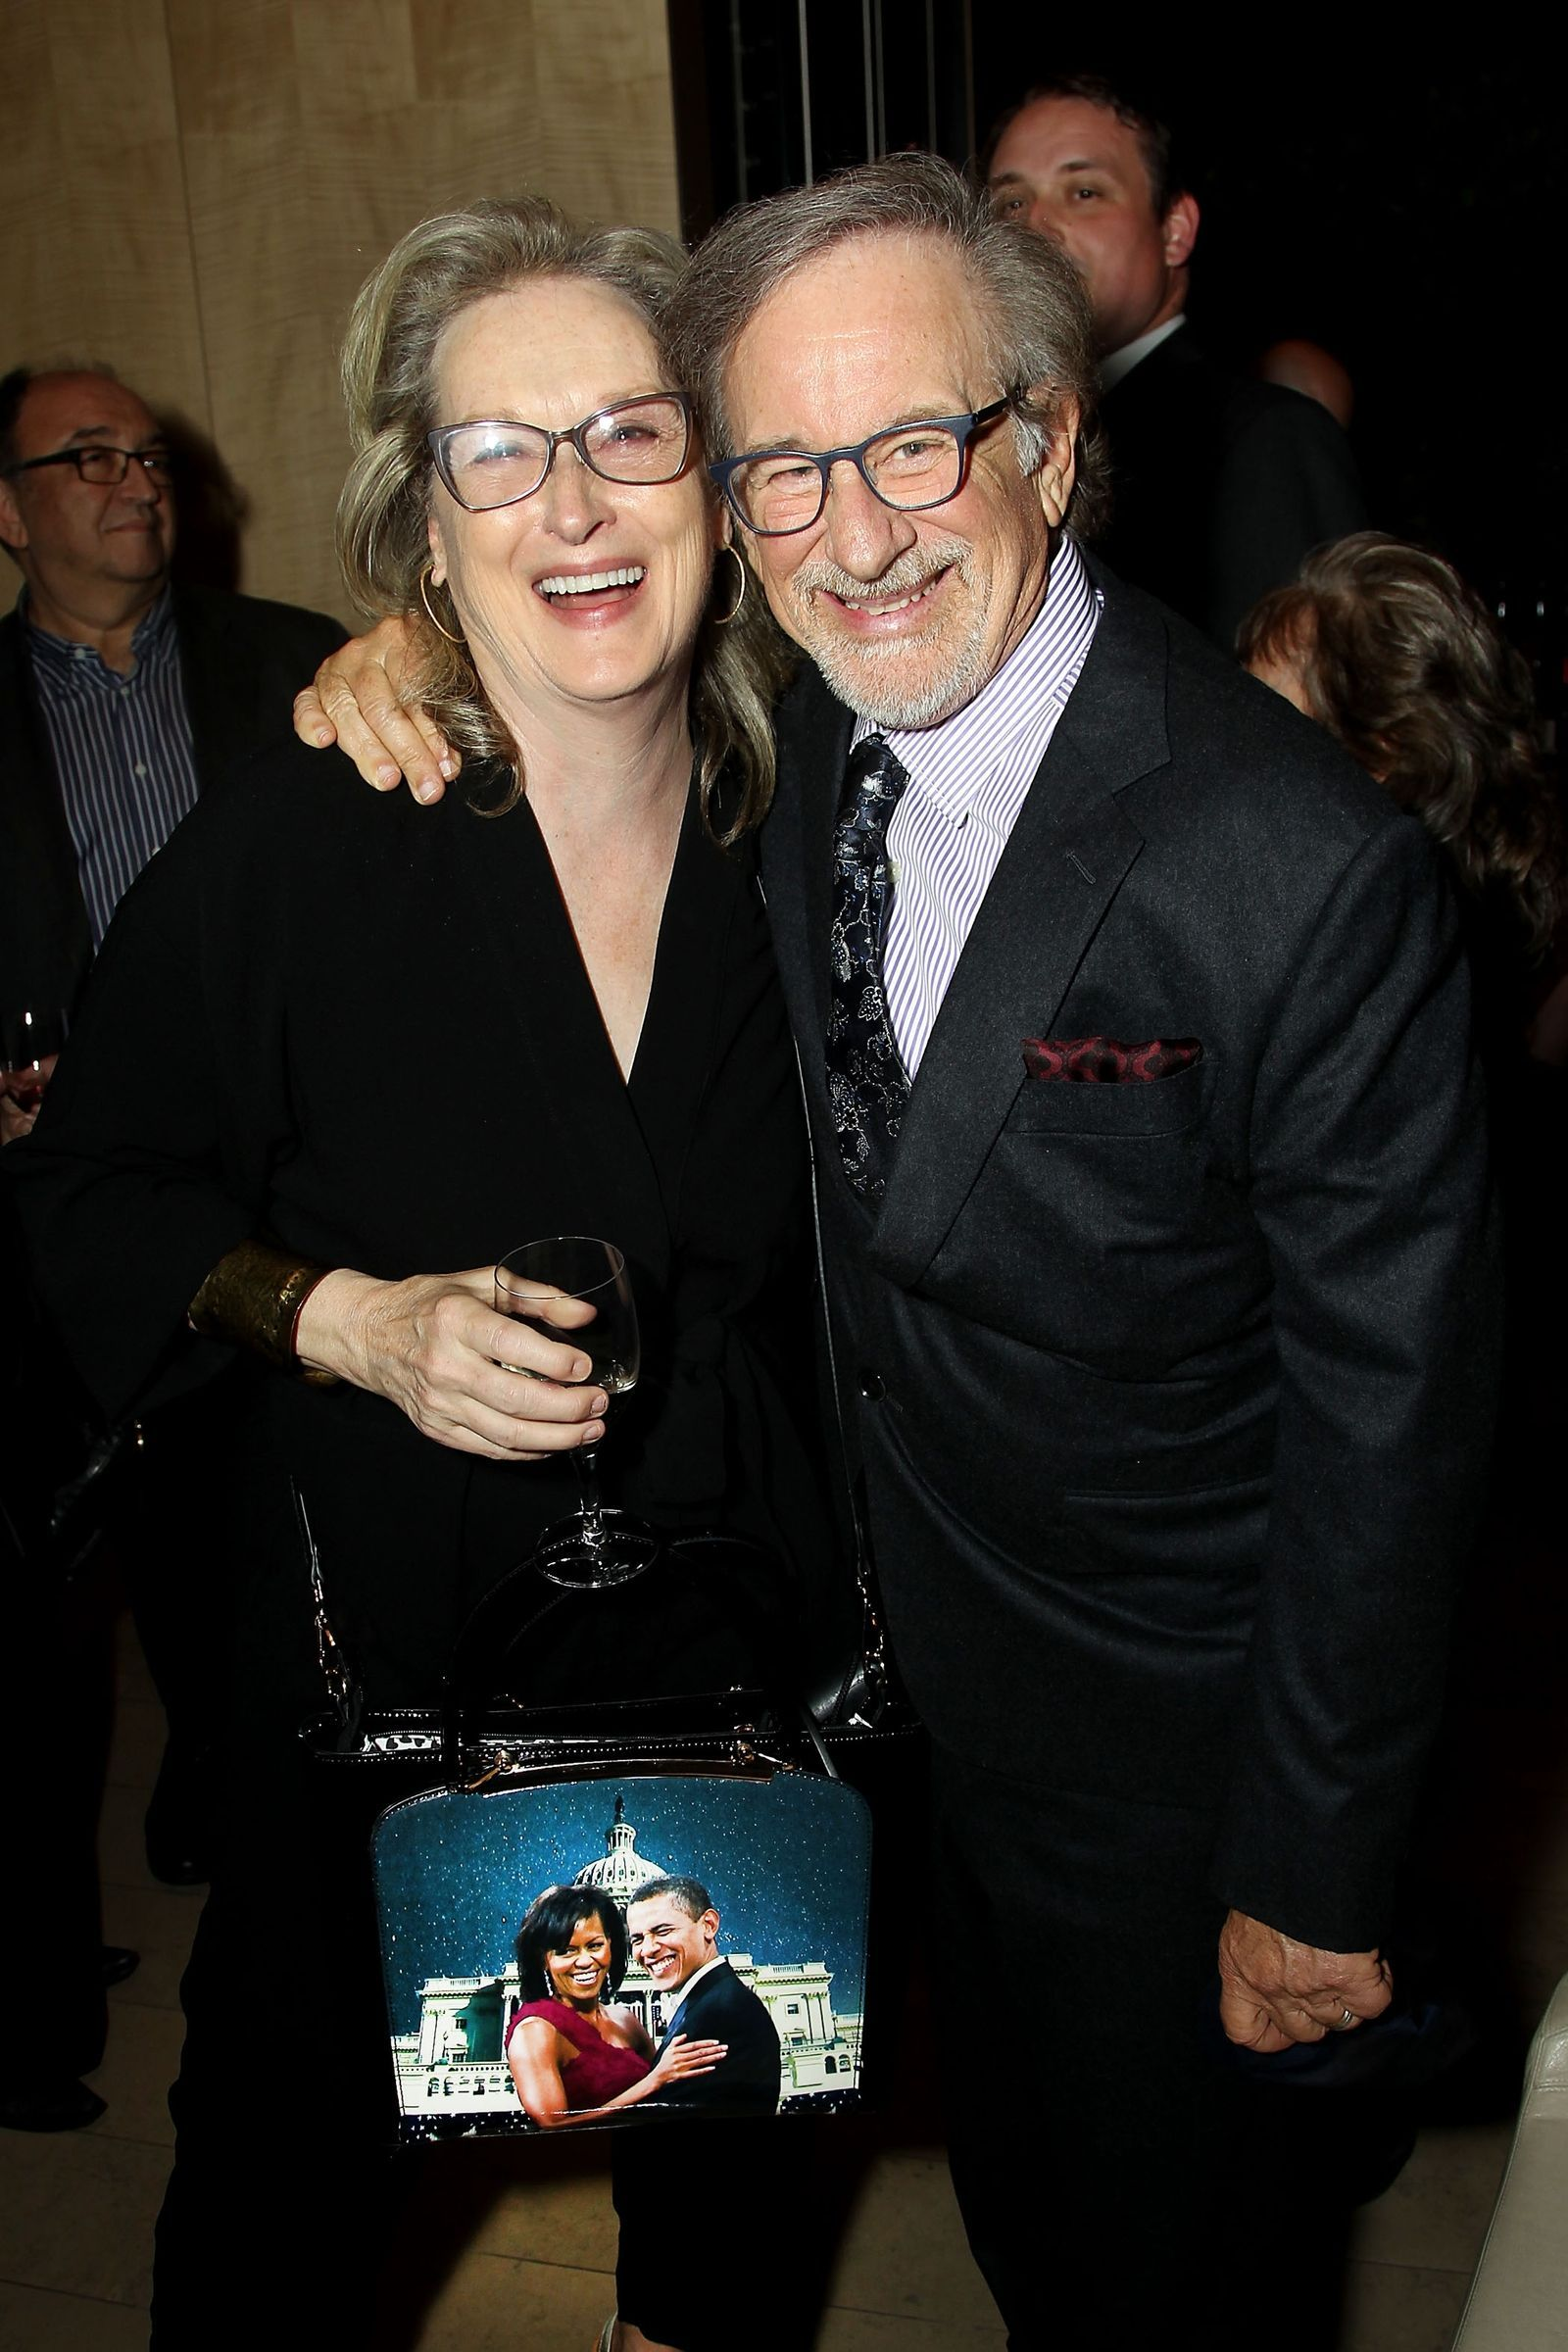 Watch Meryl Streep has a handbag with Michelle and Barack Obama's faces on it video